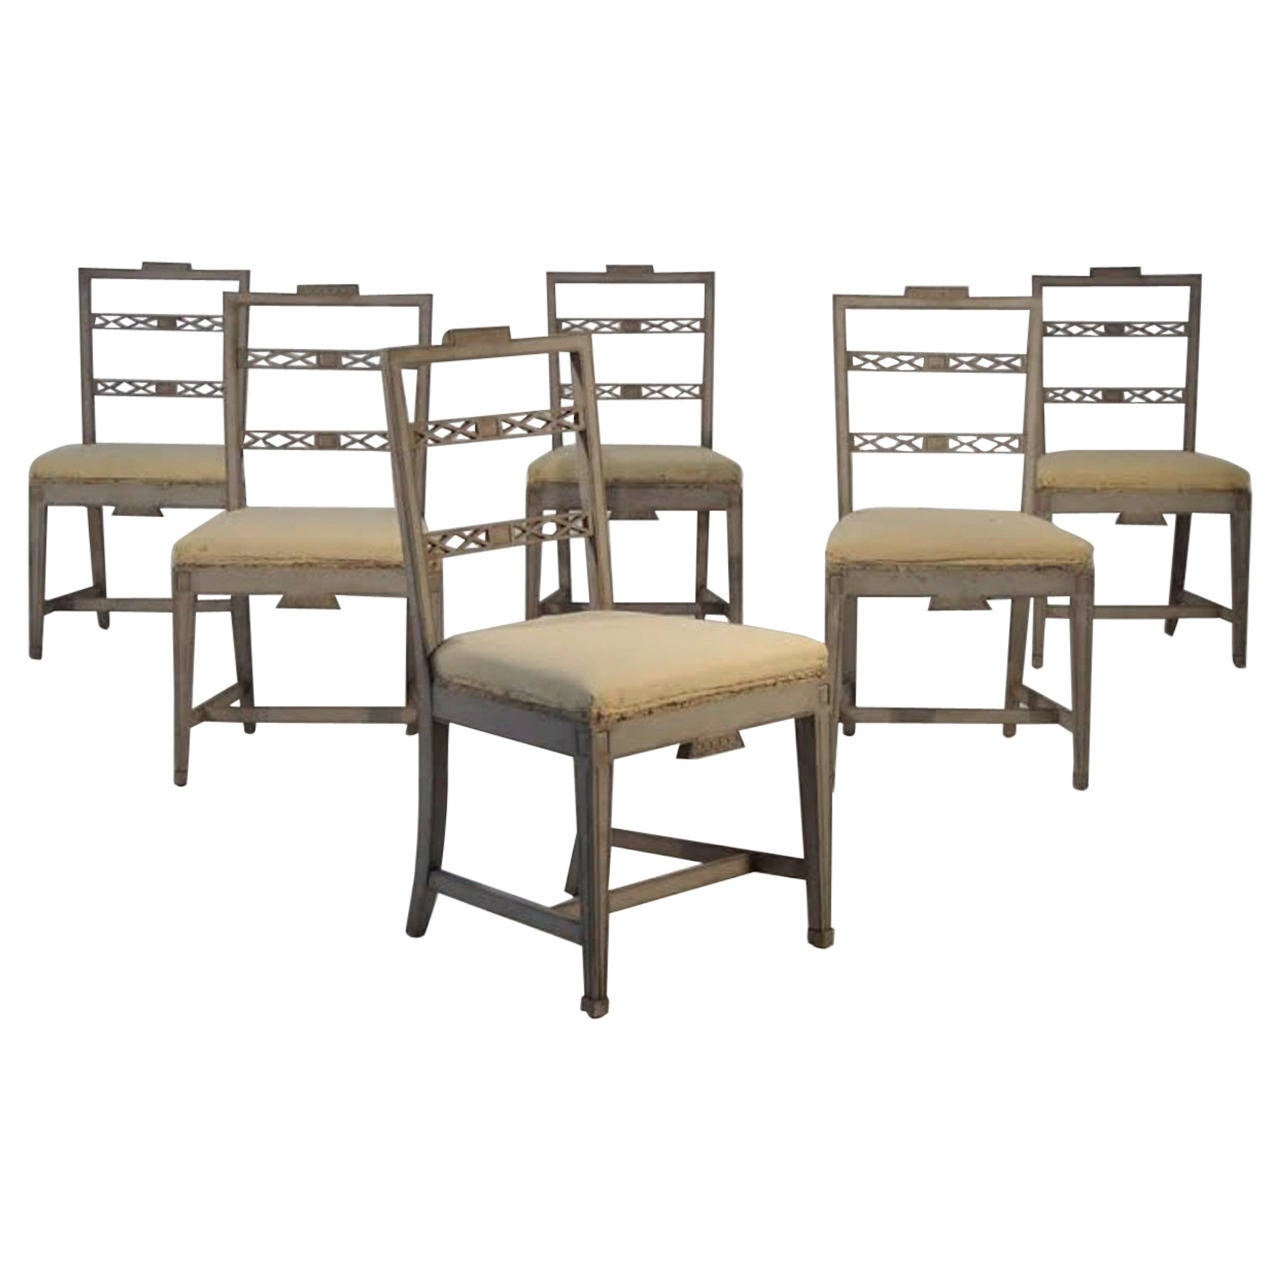 Set of 6 swedish gustavian style dining chairs at 1stdibs for Swedish style dining chairs